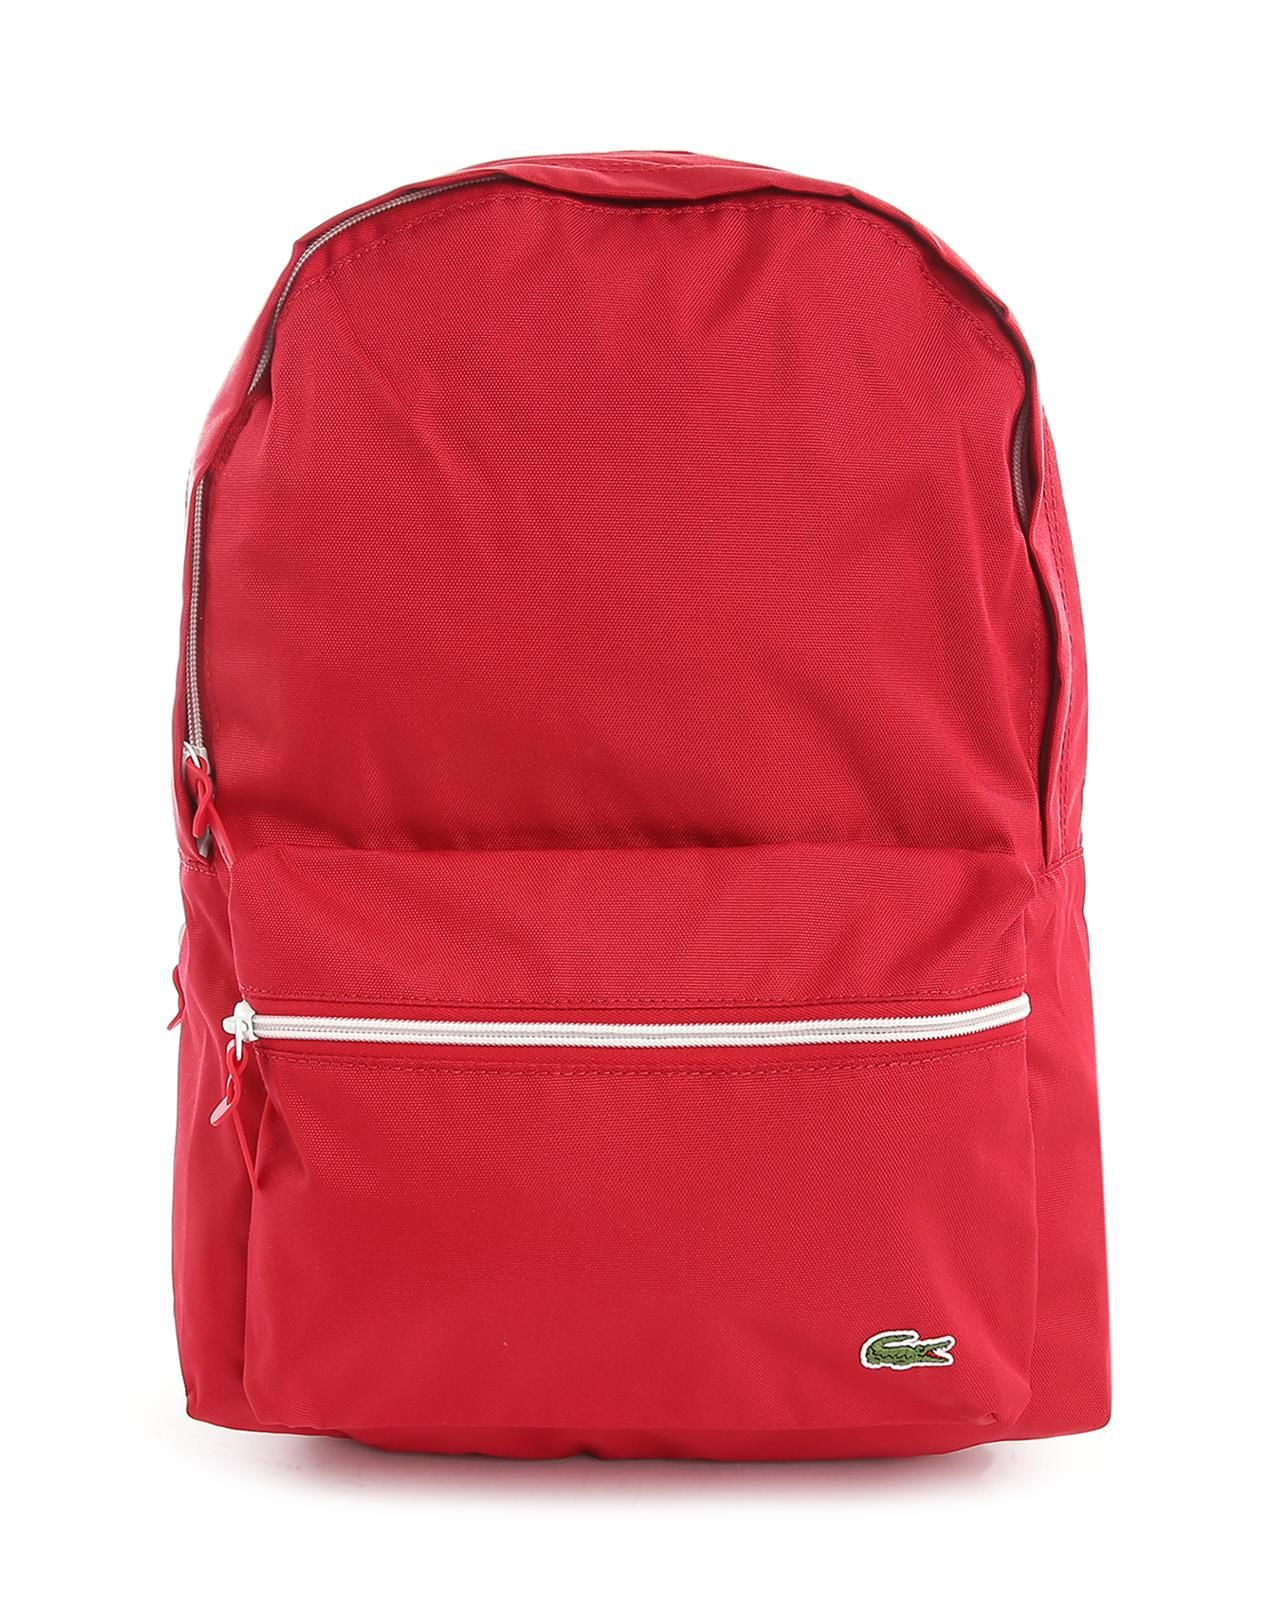 Lacoste Red Backpack in Red for Men